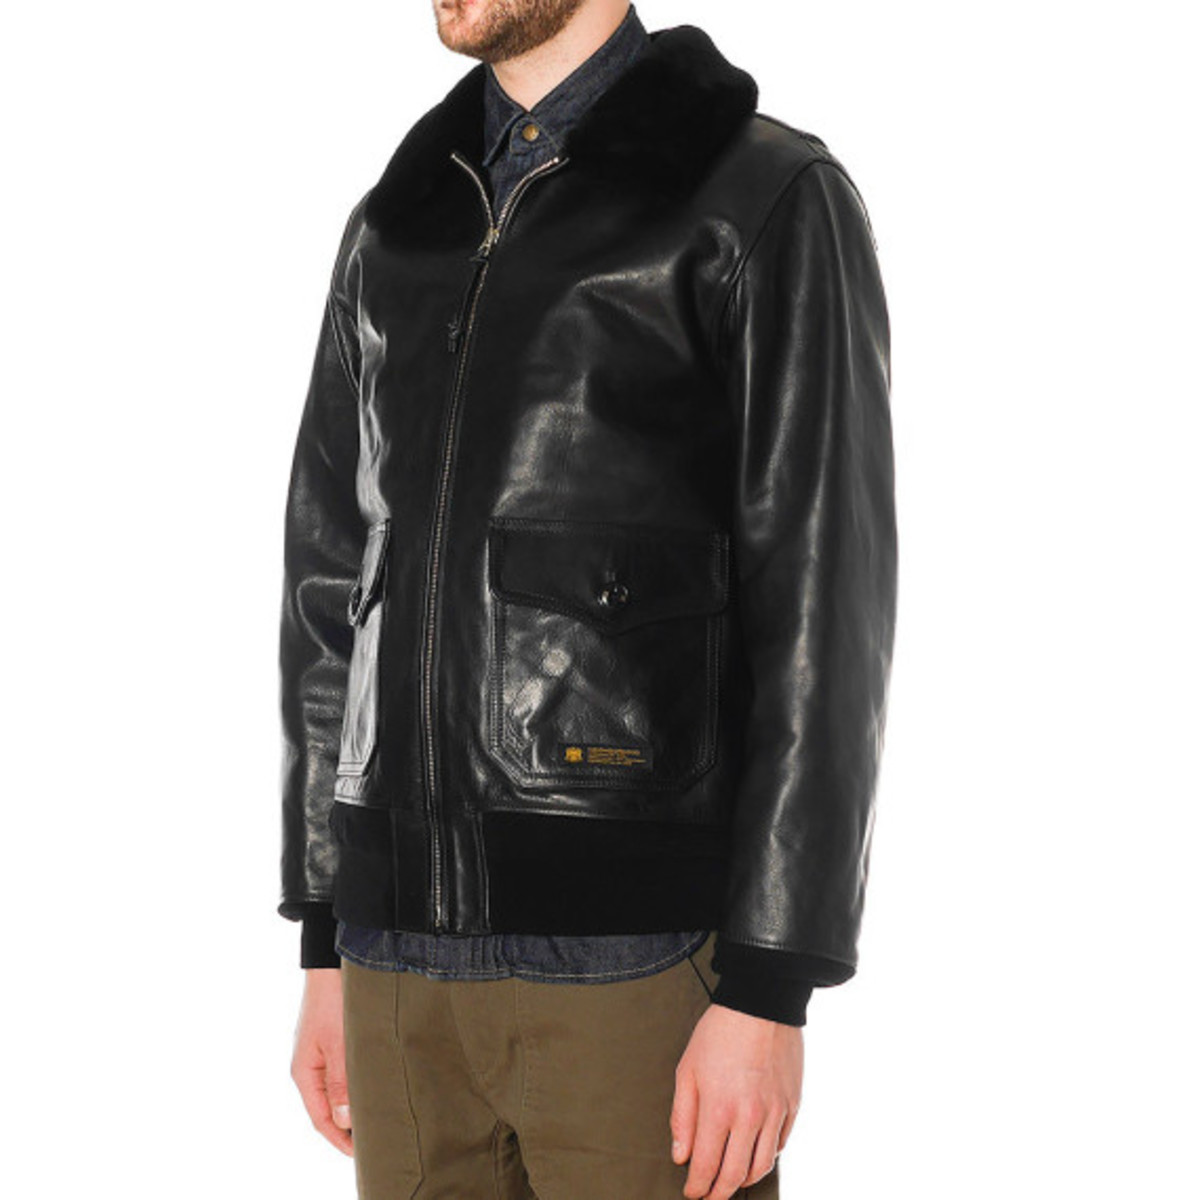 neighborhood-g-1-flight-jacket-05